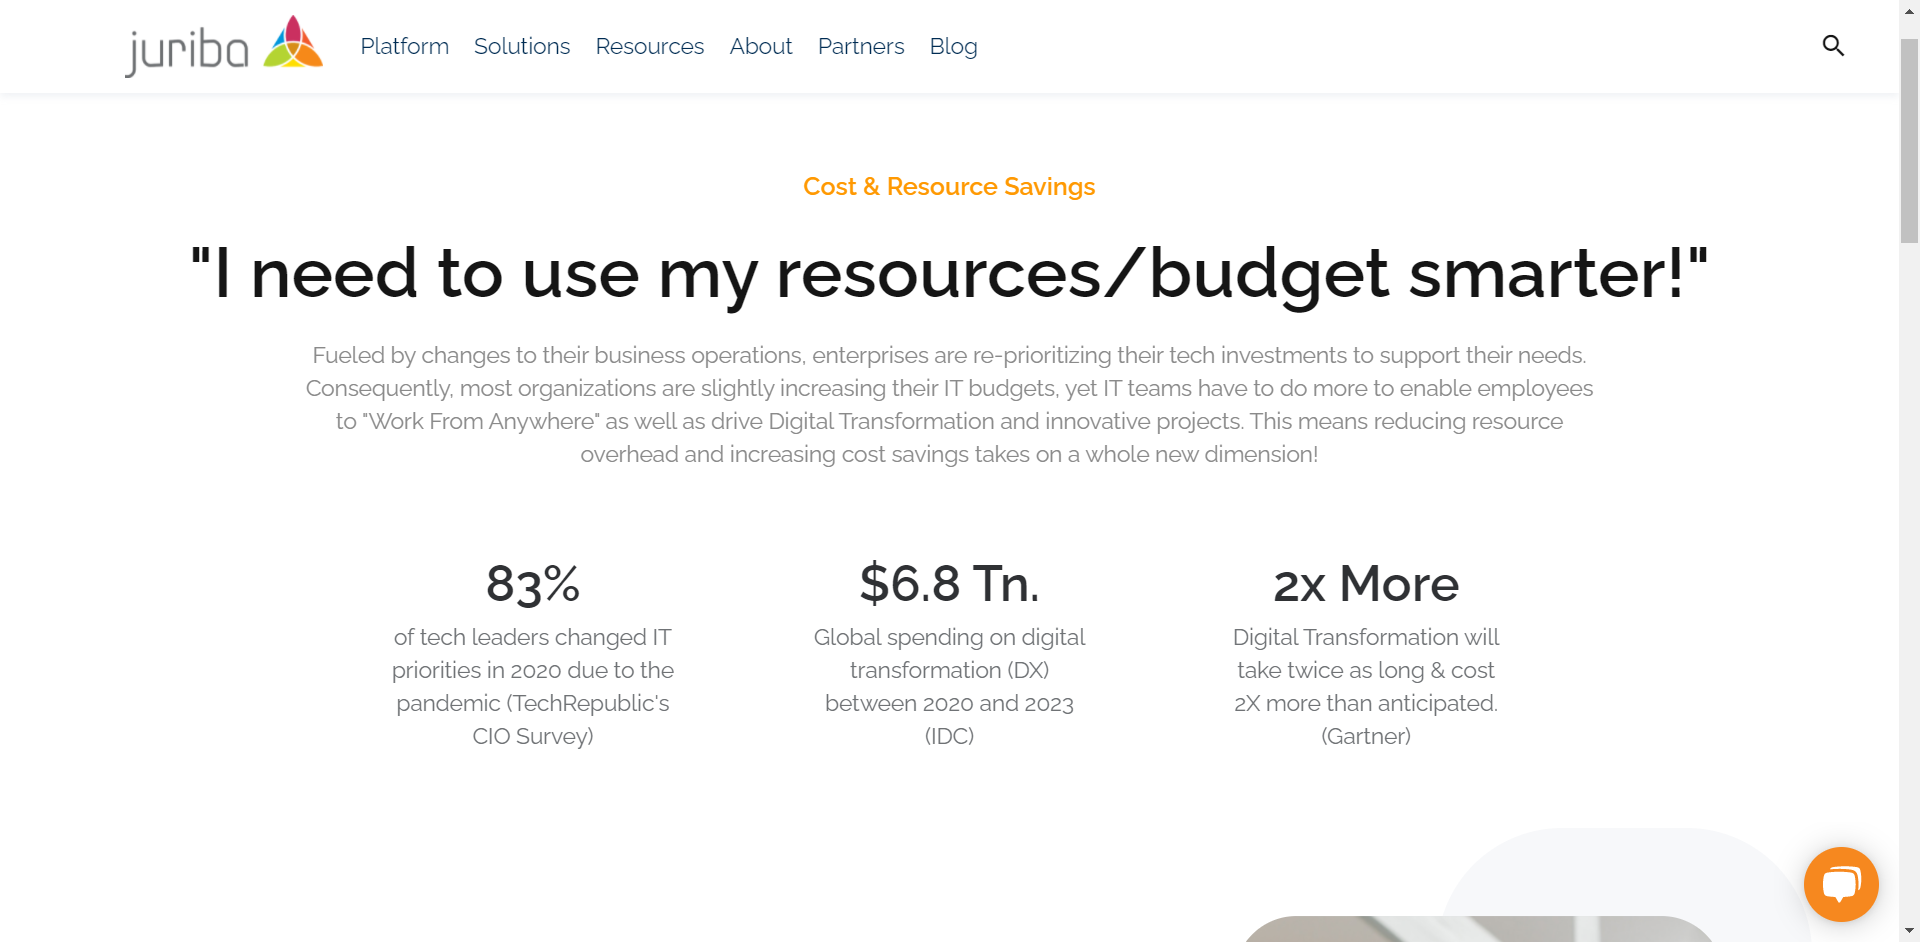 Solutions-Reduce-Resource-Cut-Cost